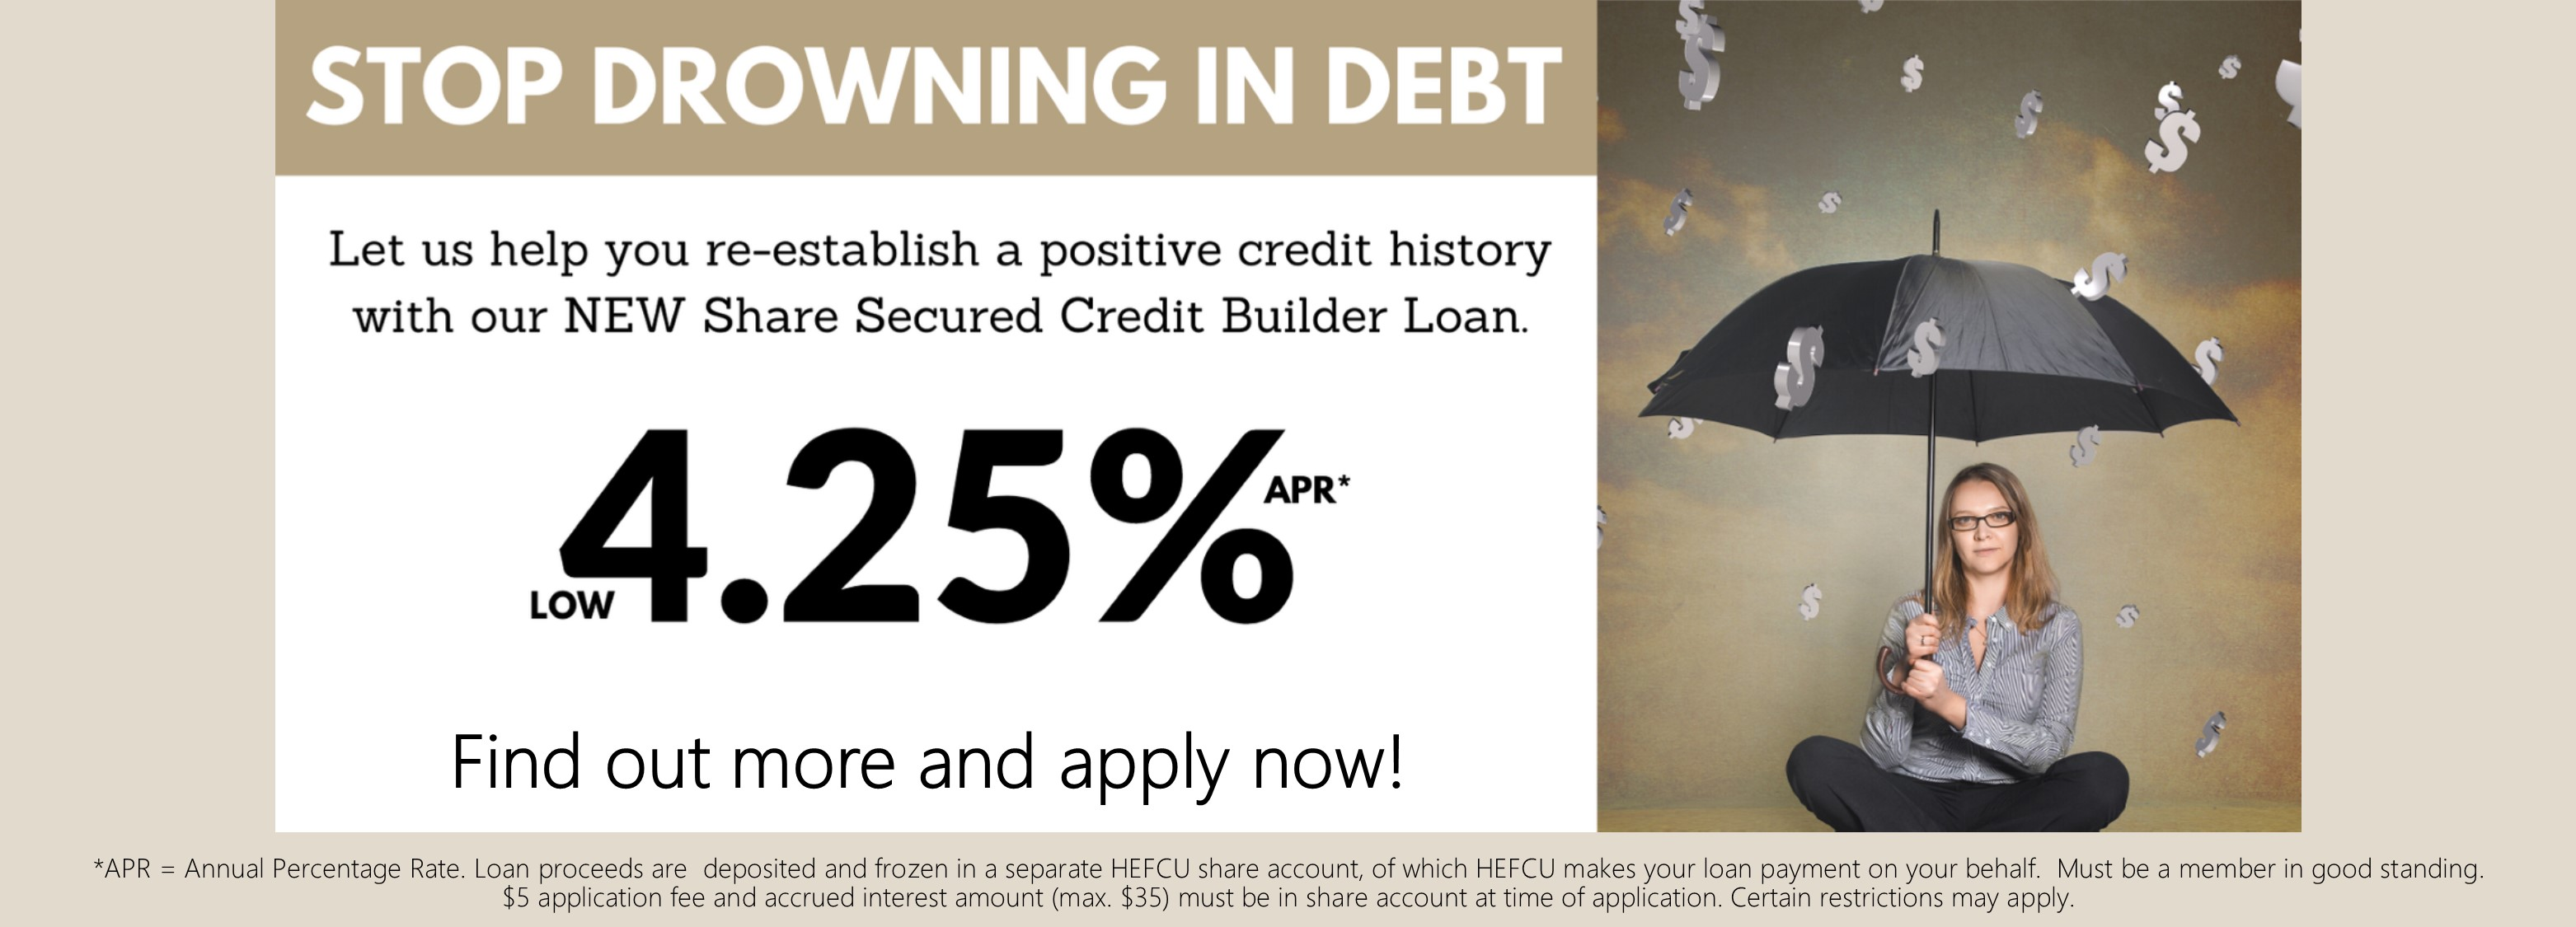 HEFCU can help you re-establish a positive credit history with our new share secured credit builder loan. For more information or to apply go to https://www.hefcu.com/?page_id=2385&preview=true